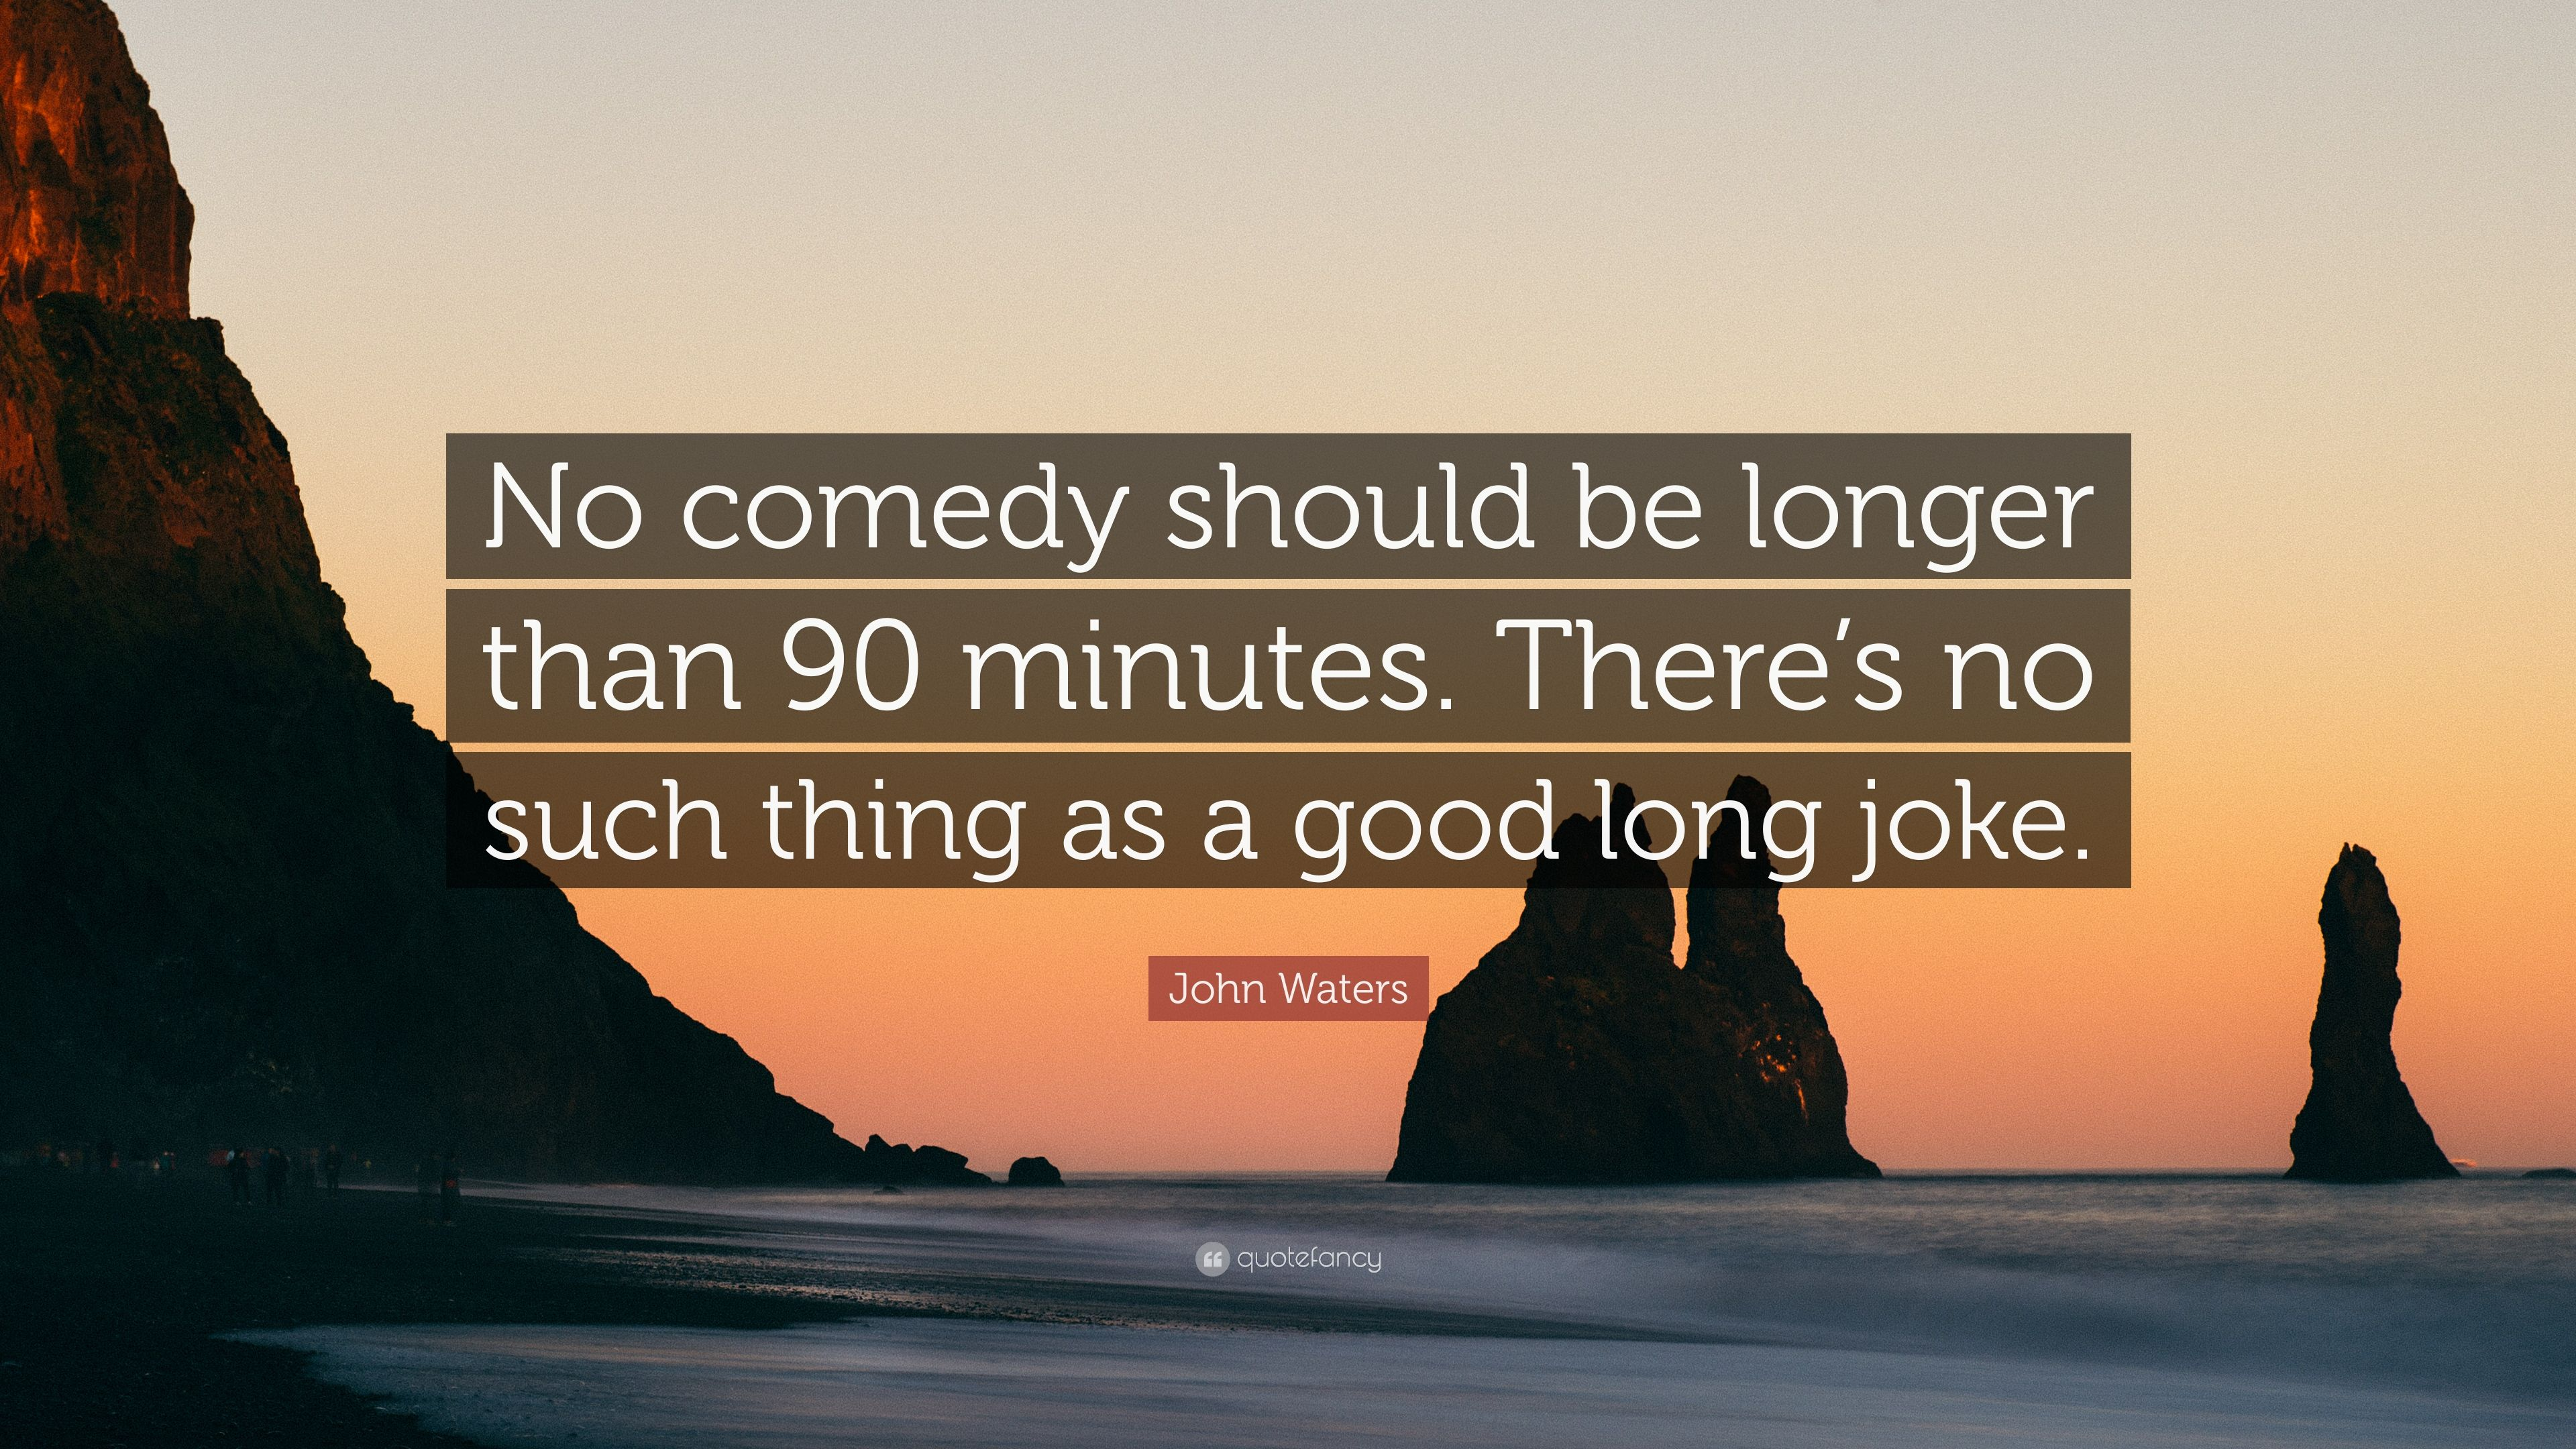 John Waters Quote No Comedy Should Be Longer Than 90 Minutes There S No Such Thing As A Good Long Joke 6 Wallpapers Quotefancy